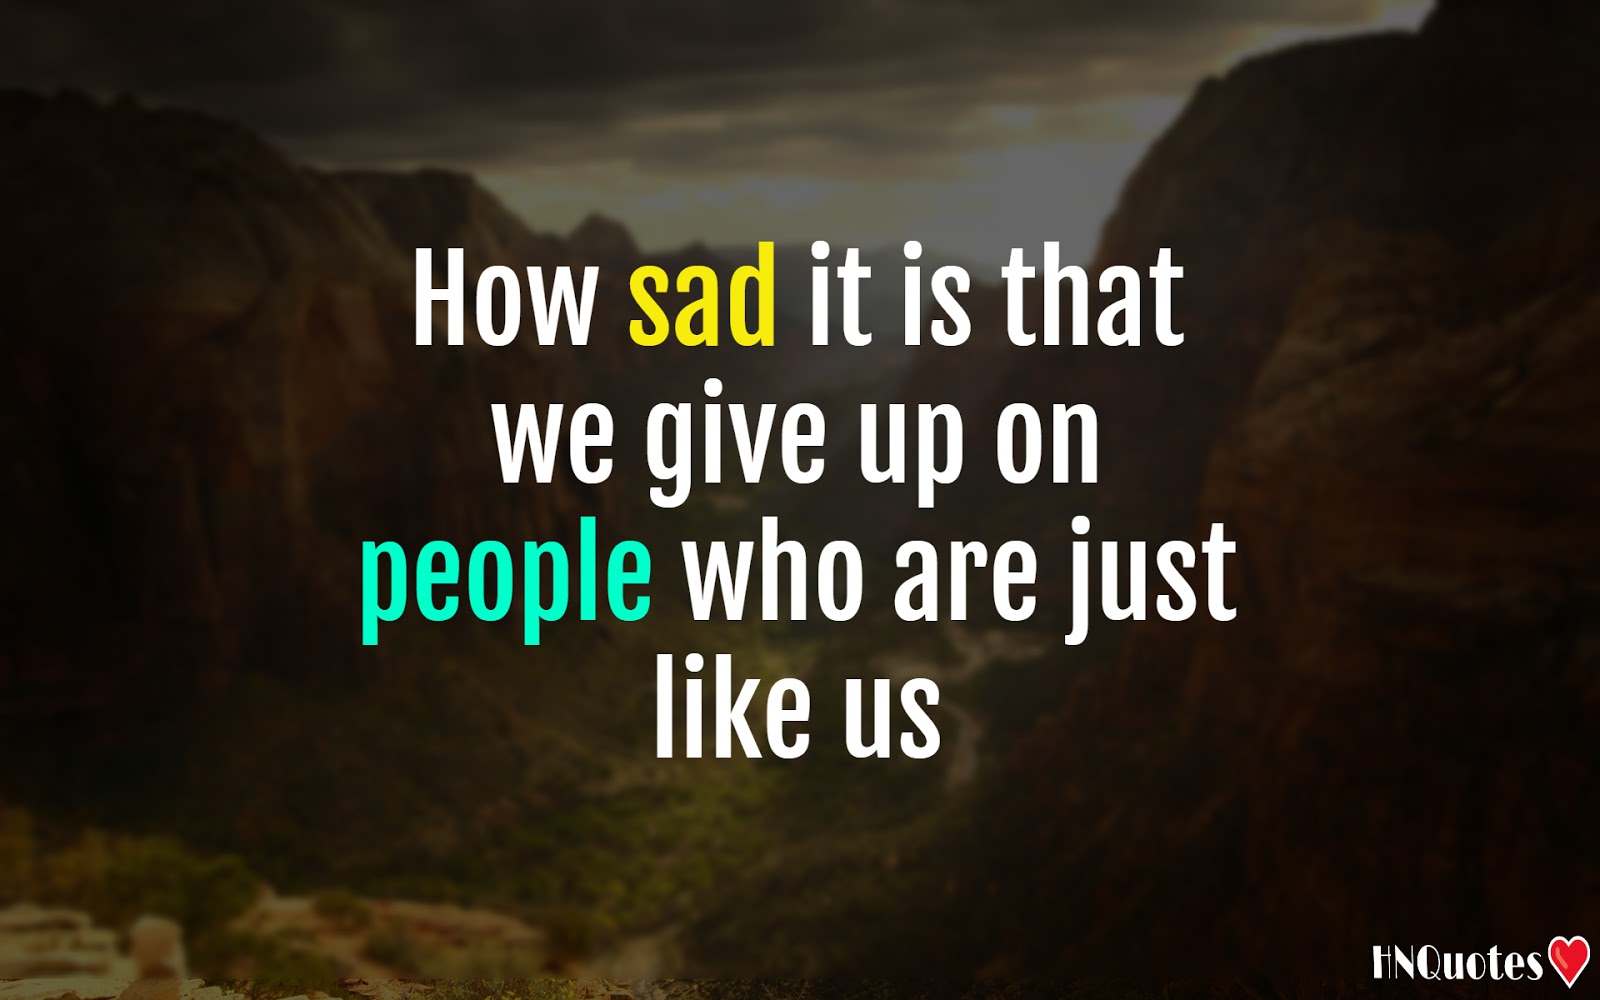 Sad-&-Emotional-Quotes-on-Life-80-Best-Emotional-Quotes[HNQuotes]